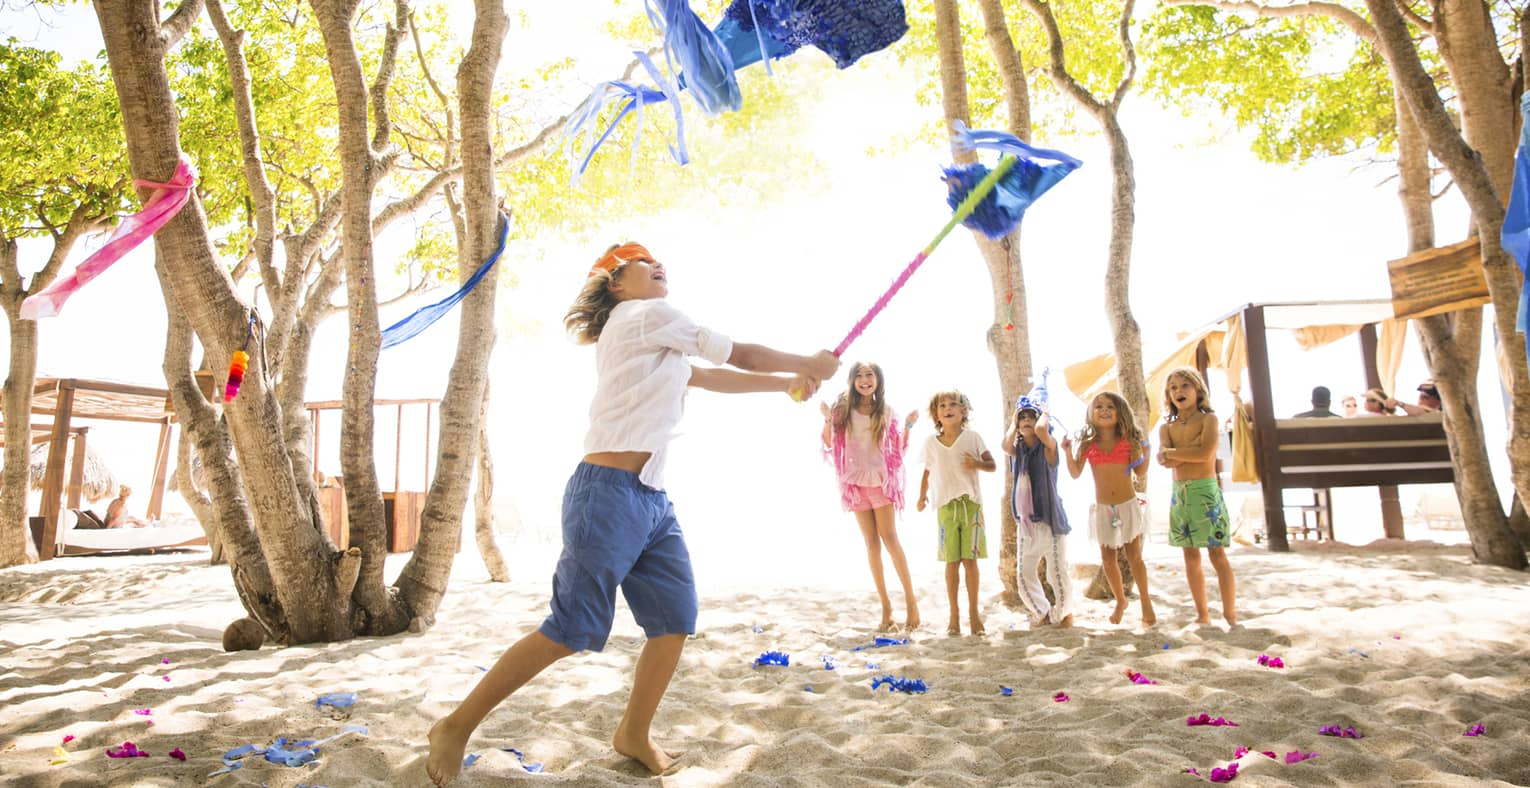 Boy wearing orange blindfold swings stick at blue pinata on beach while five young children cheer him on